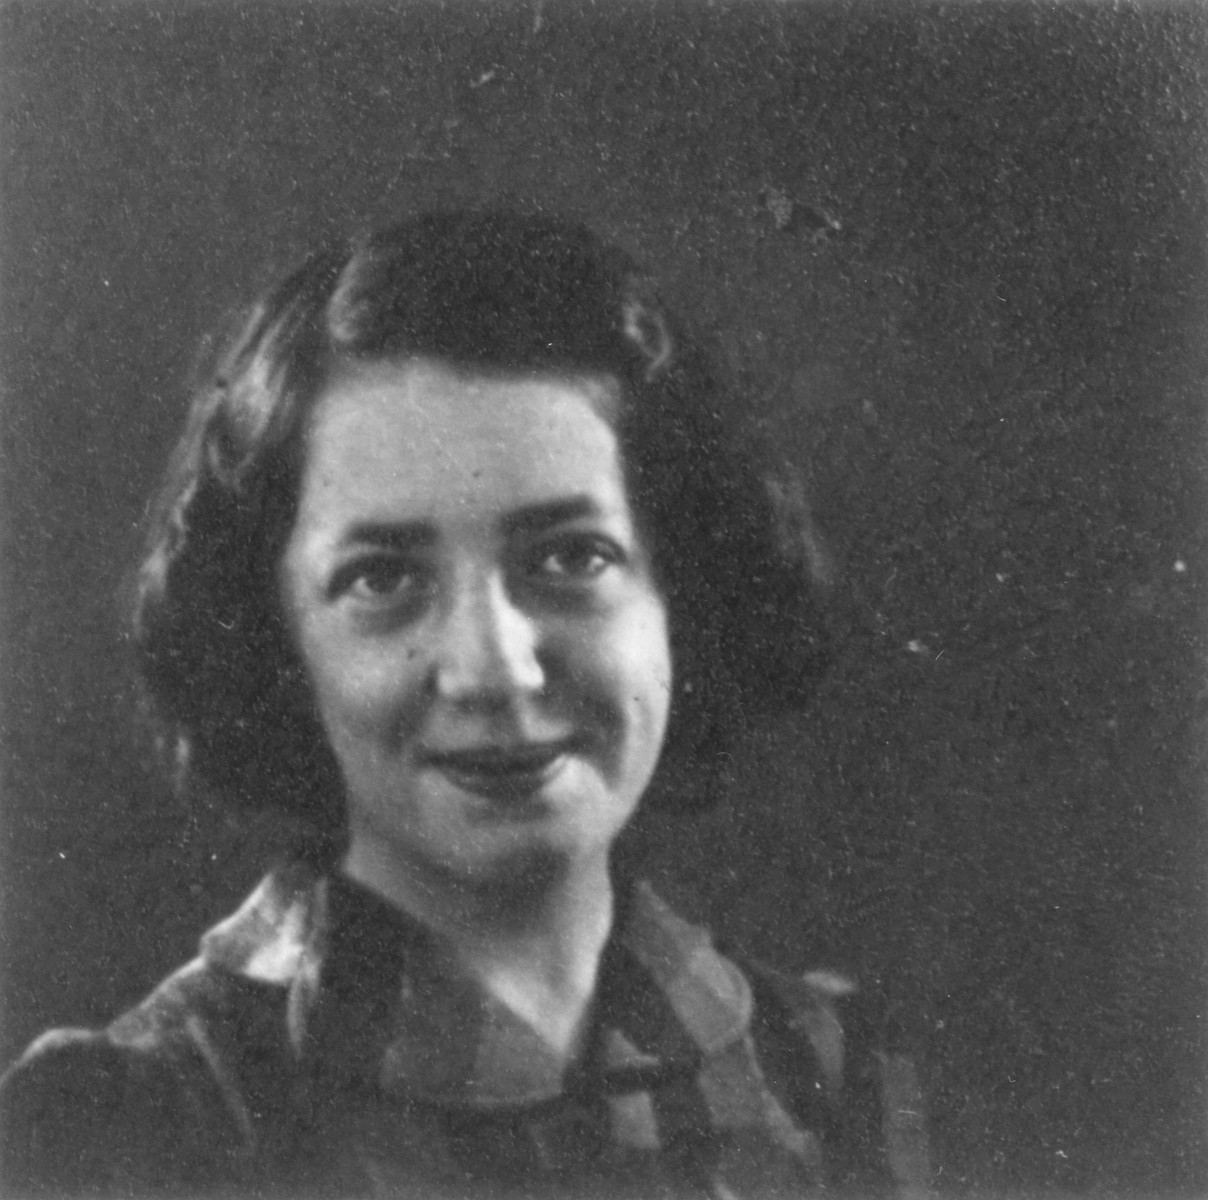 Portrait of Dorrit Trost (b. 1929), the niece of Herma Ellengoghen, as an Austrian-Jewish refugee living in Belgium.  Dorrit and her family were deported and killed in Auschwitz.